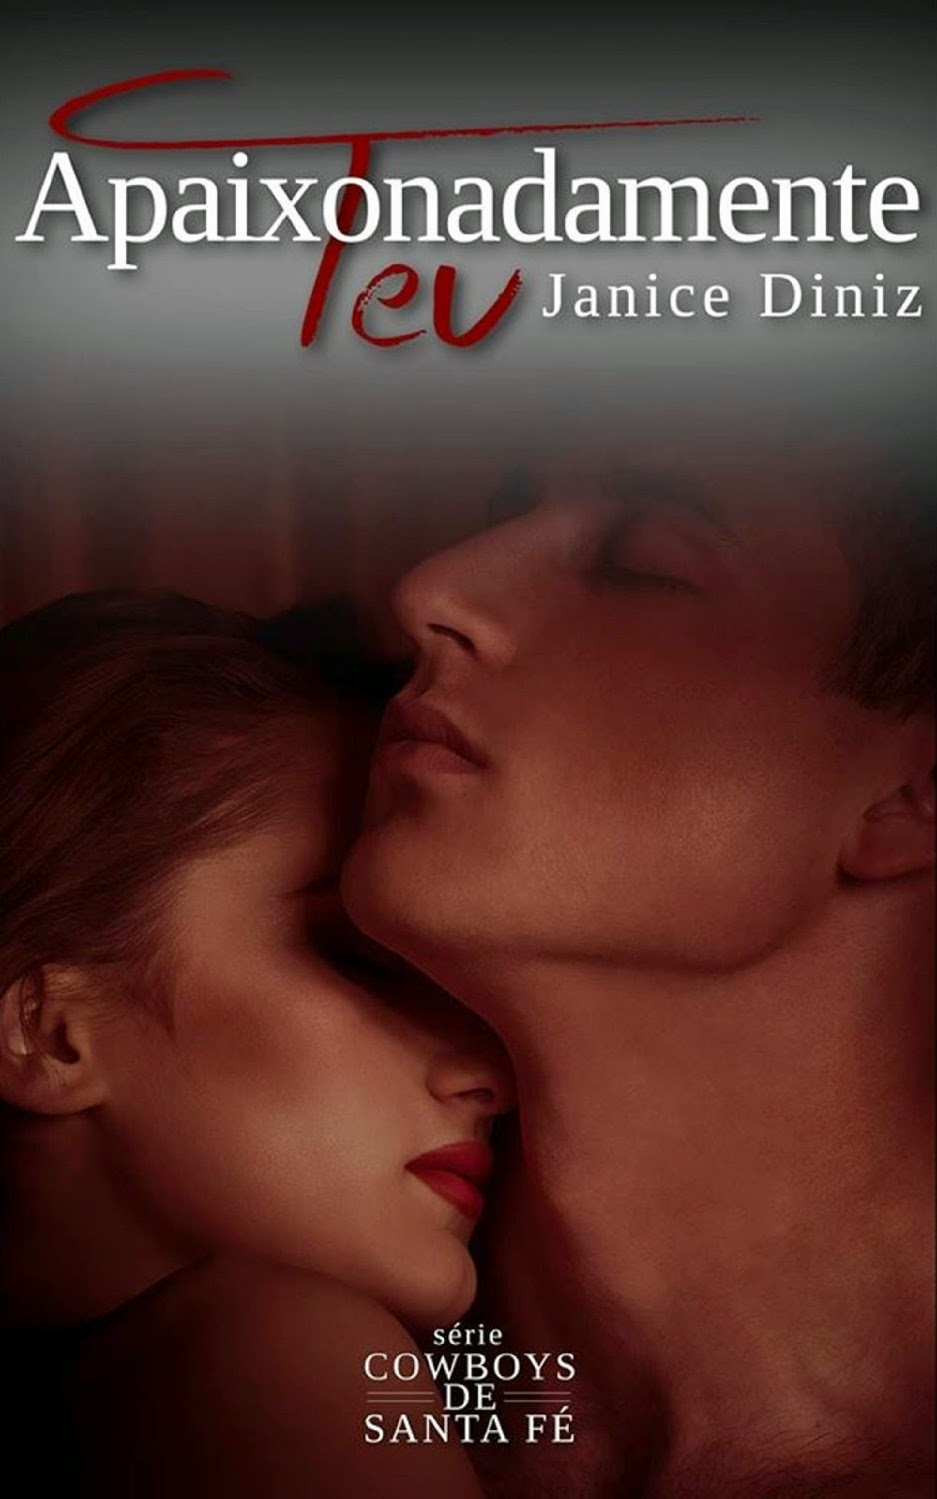 http://www.amazon.com.br/Apaixonadamente-Teu-Janice-Diniz-ebook/dp/B00NG7ITFW/ref=sr_1_1?ie=UTF8&qid=1413375252&sr=8-1&keywords=janice+diniz